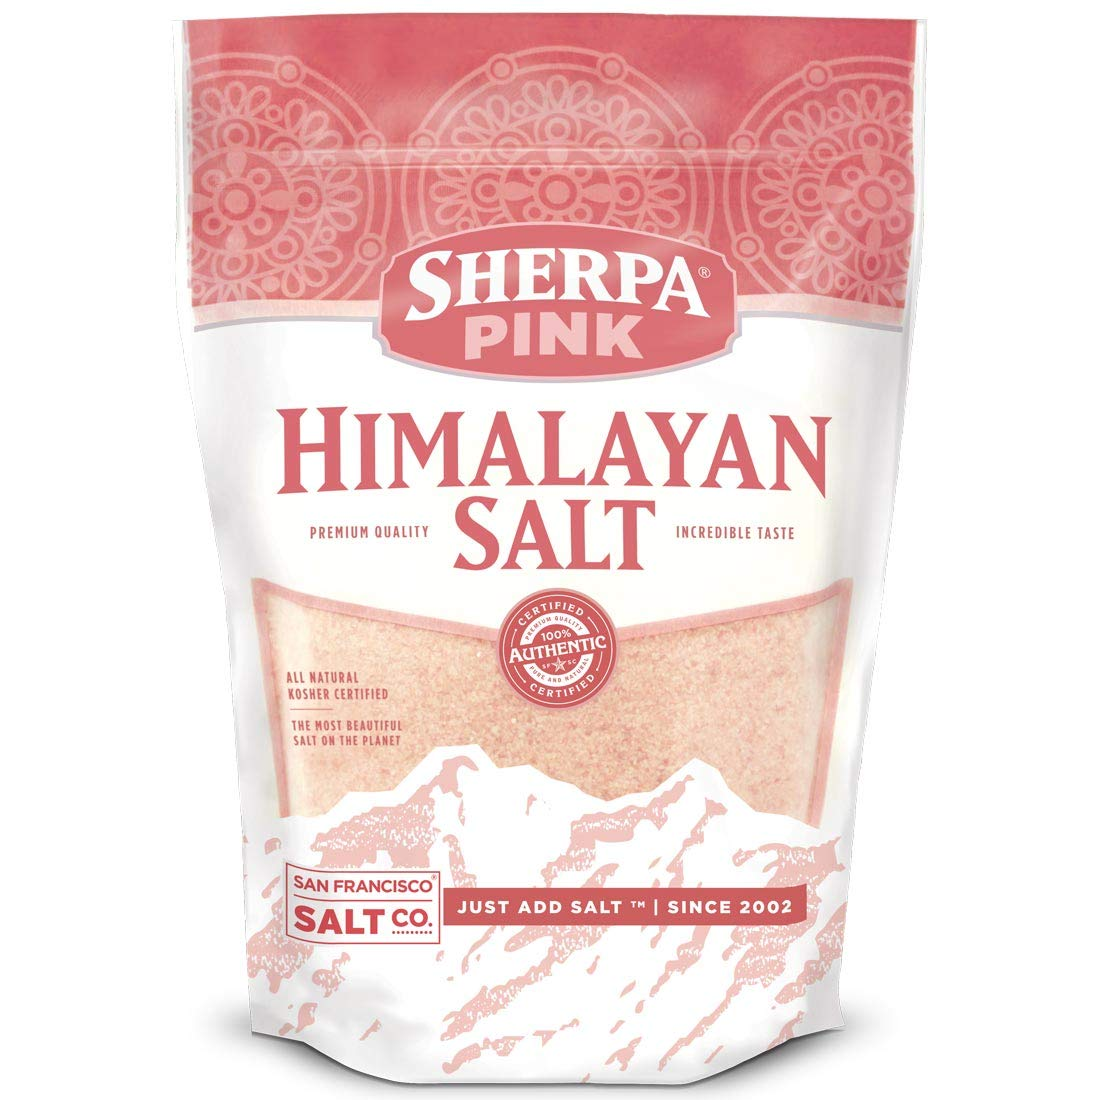 Sherpa Pink Gourmet Himalayan Salt, 2 lbs. Fine Grain. Incredible Taste. Rich in Nutrients and Minerals To Improve Your Health. Add To Your Cart Today. by Sherpa Pink (Image #6)